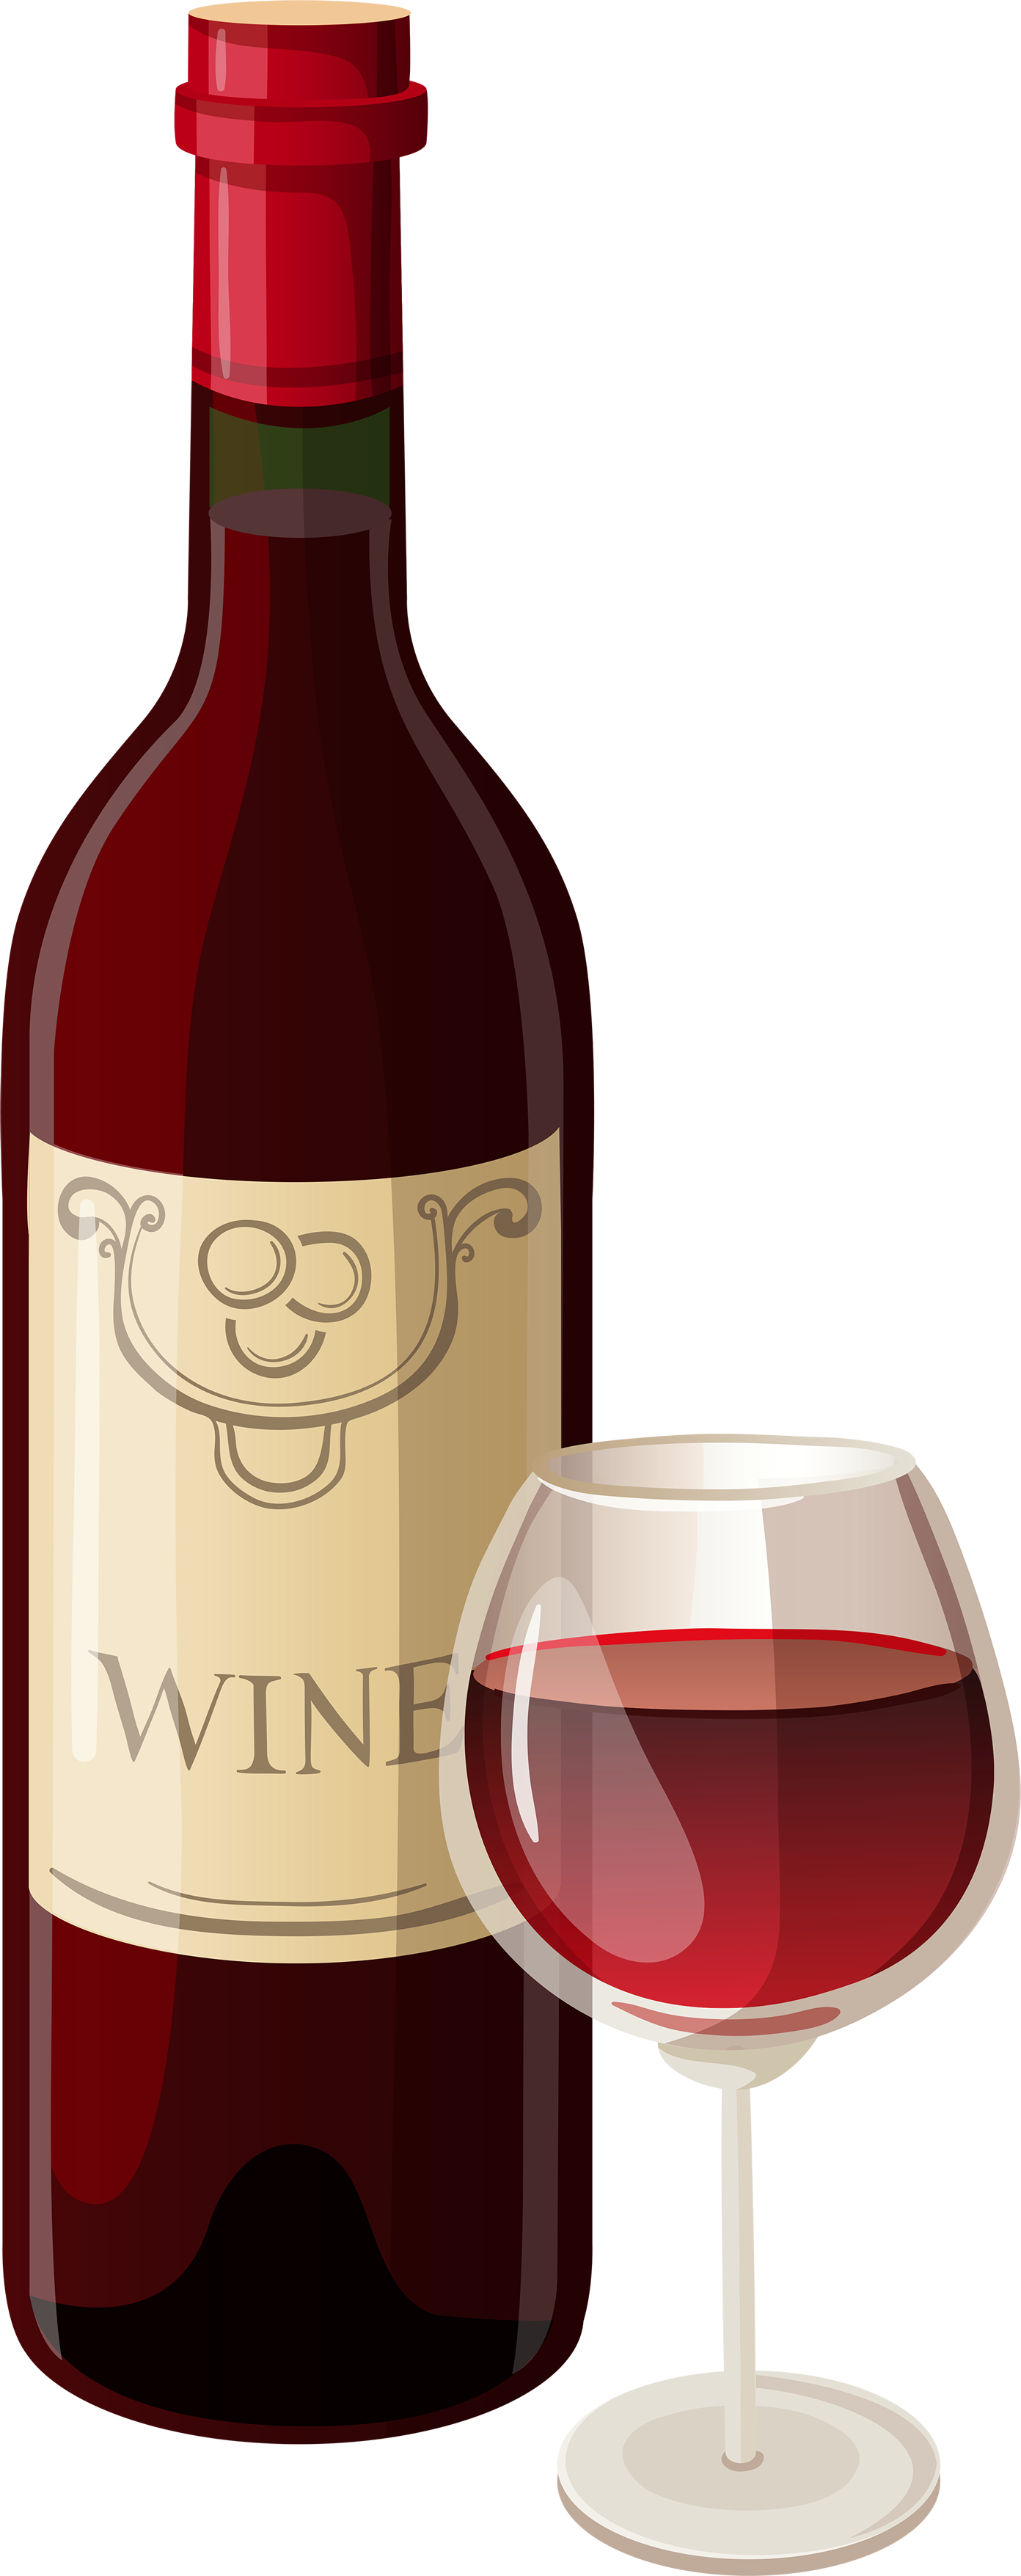 Image result for wine bottle and glass clip art | Wine